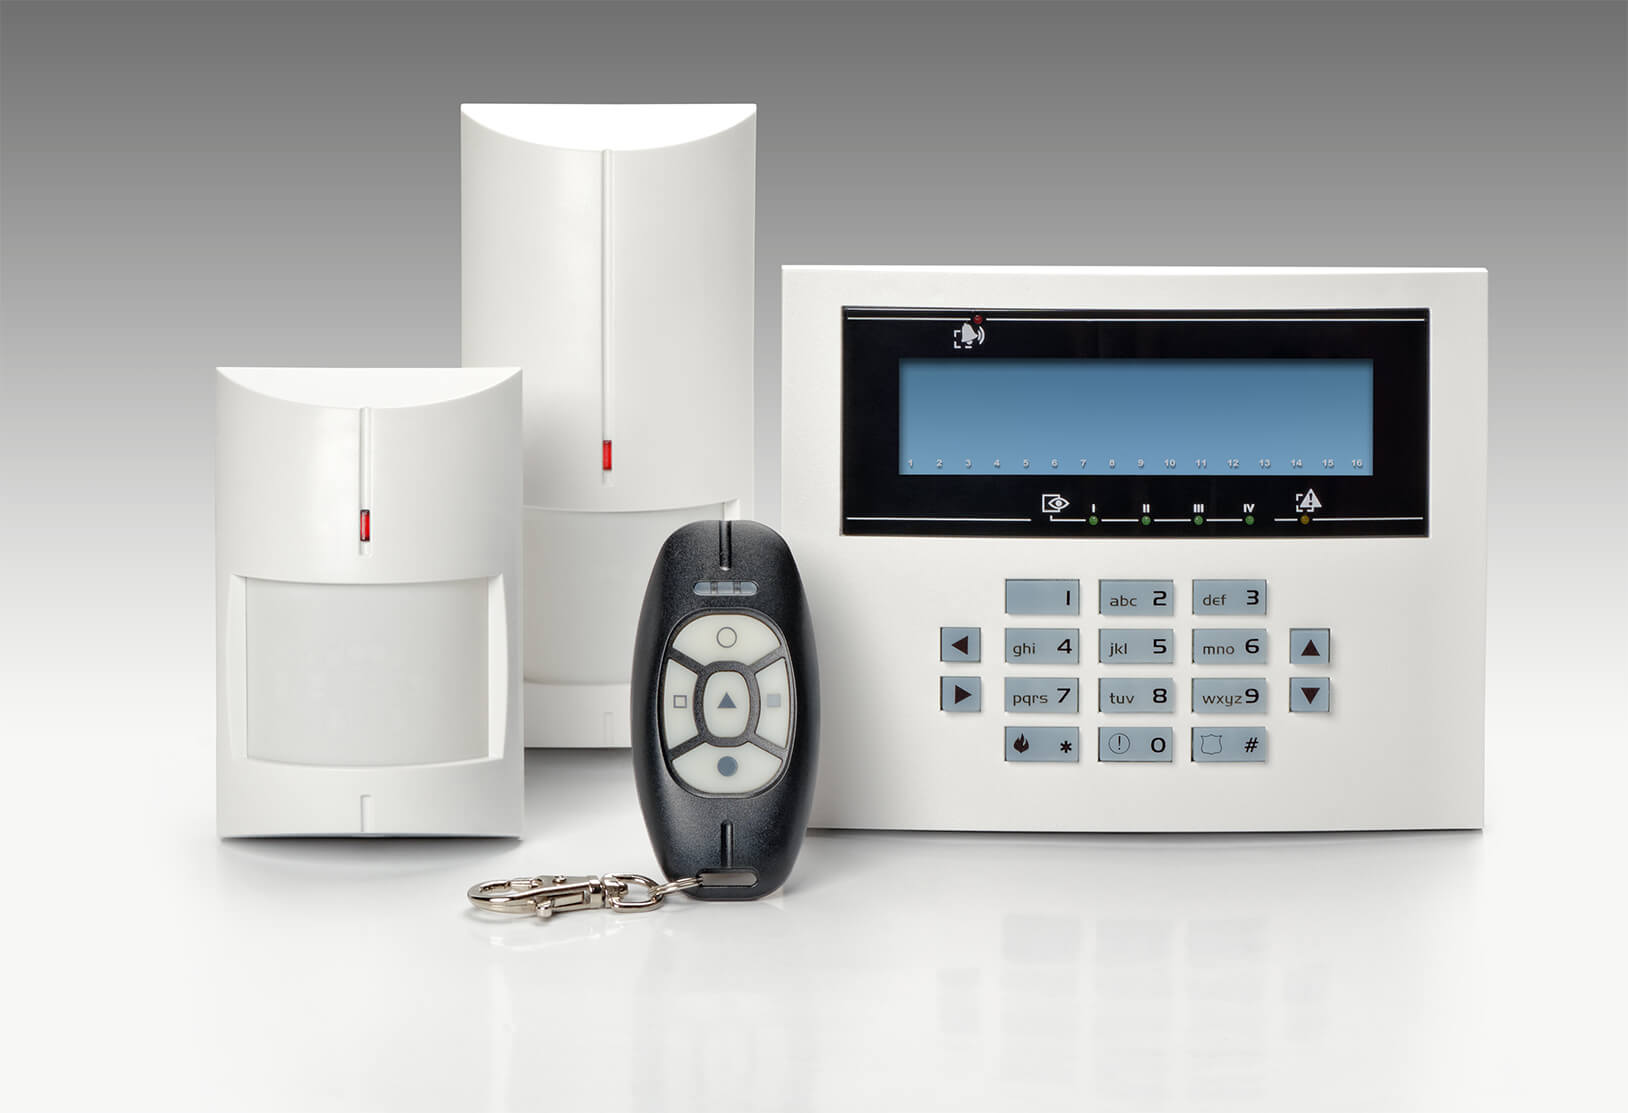 Business & Residential NSI / NACOSS Approved Burglar Alarms In West Ealing W13 - Local West Ealing W13 security company.Call 02078872244 - Dedicated to Safety & Security. Companies, shops and homes ..